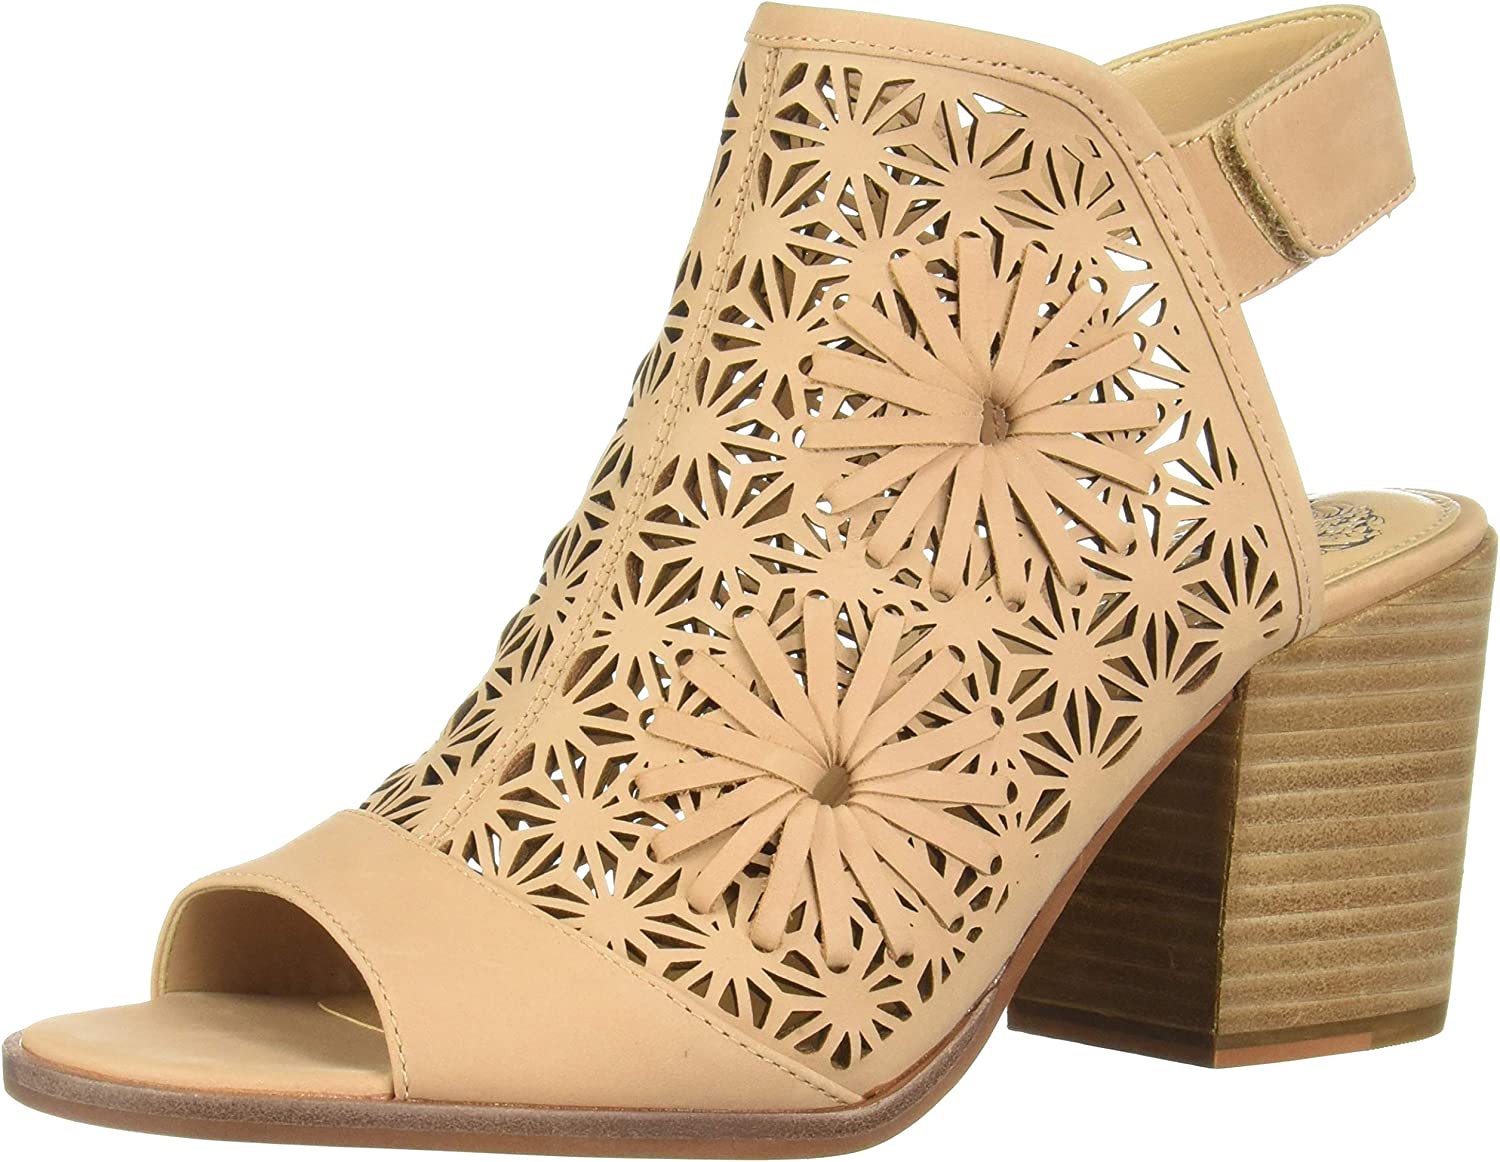 Vince Camuto Women's Leera Synthetic Open Toe Ankle Strap Wedge Sandal